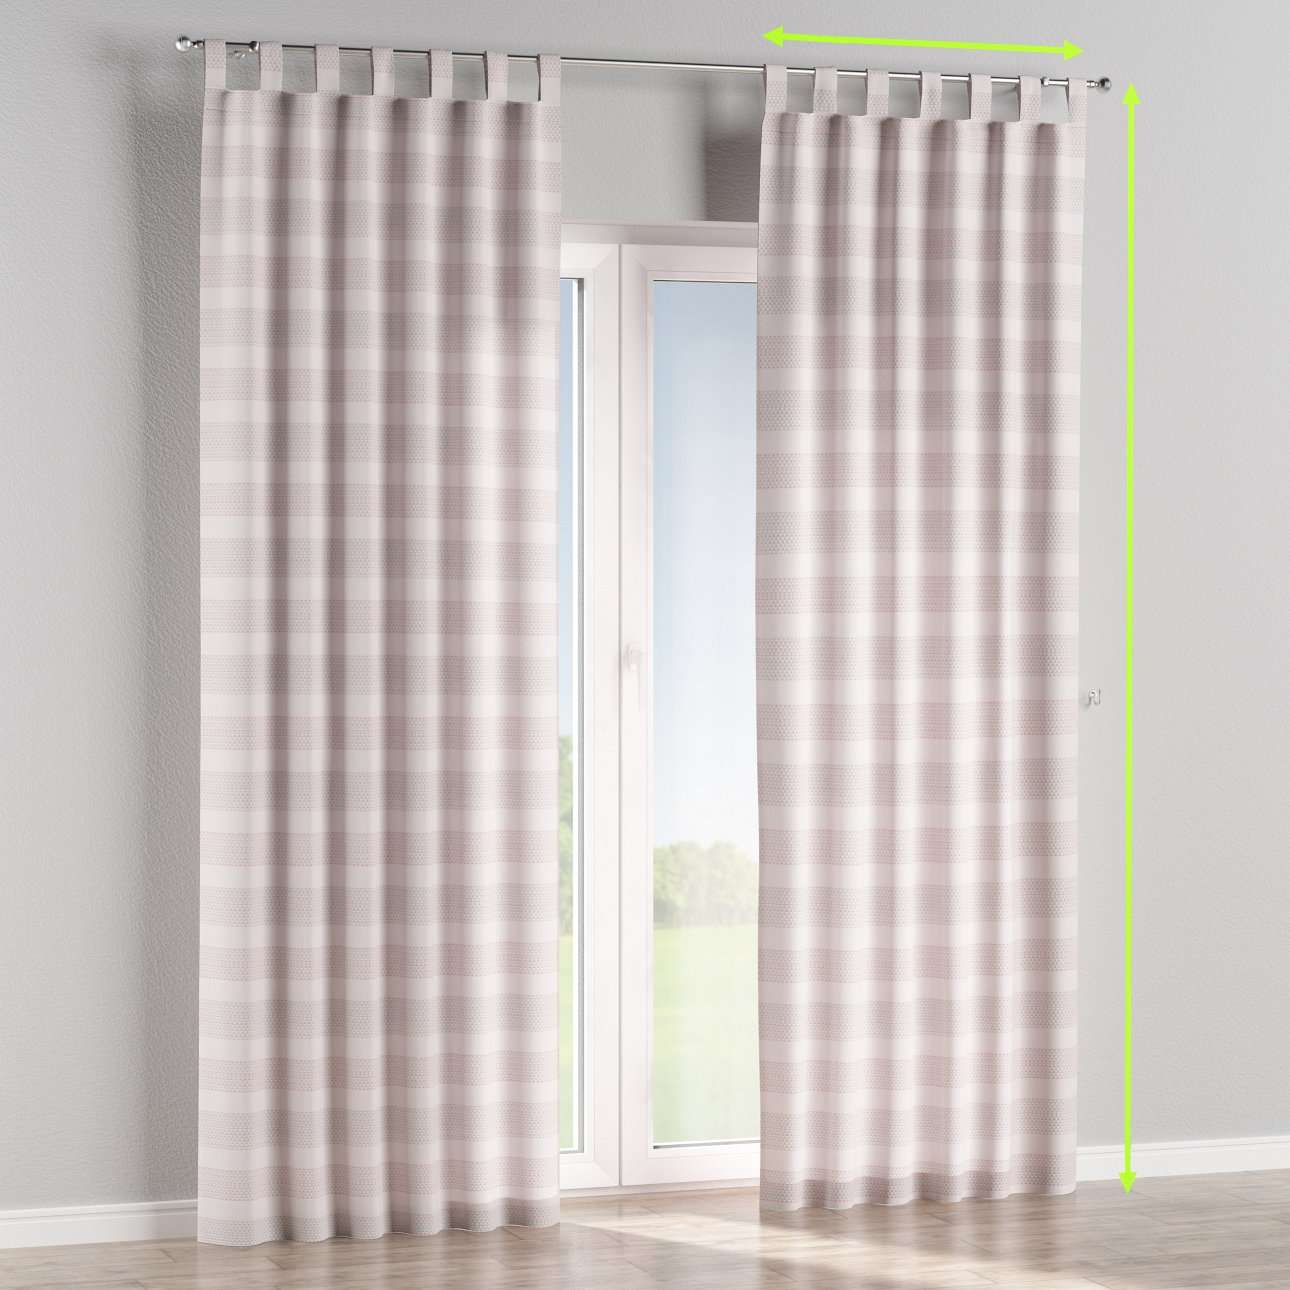 Tab top curtains in collection Rustica, fabric: 140-29